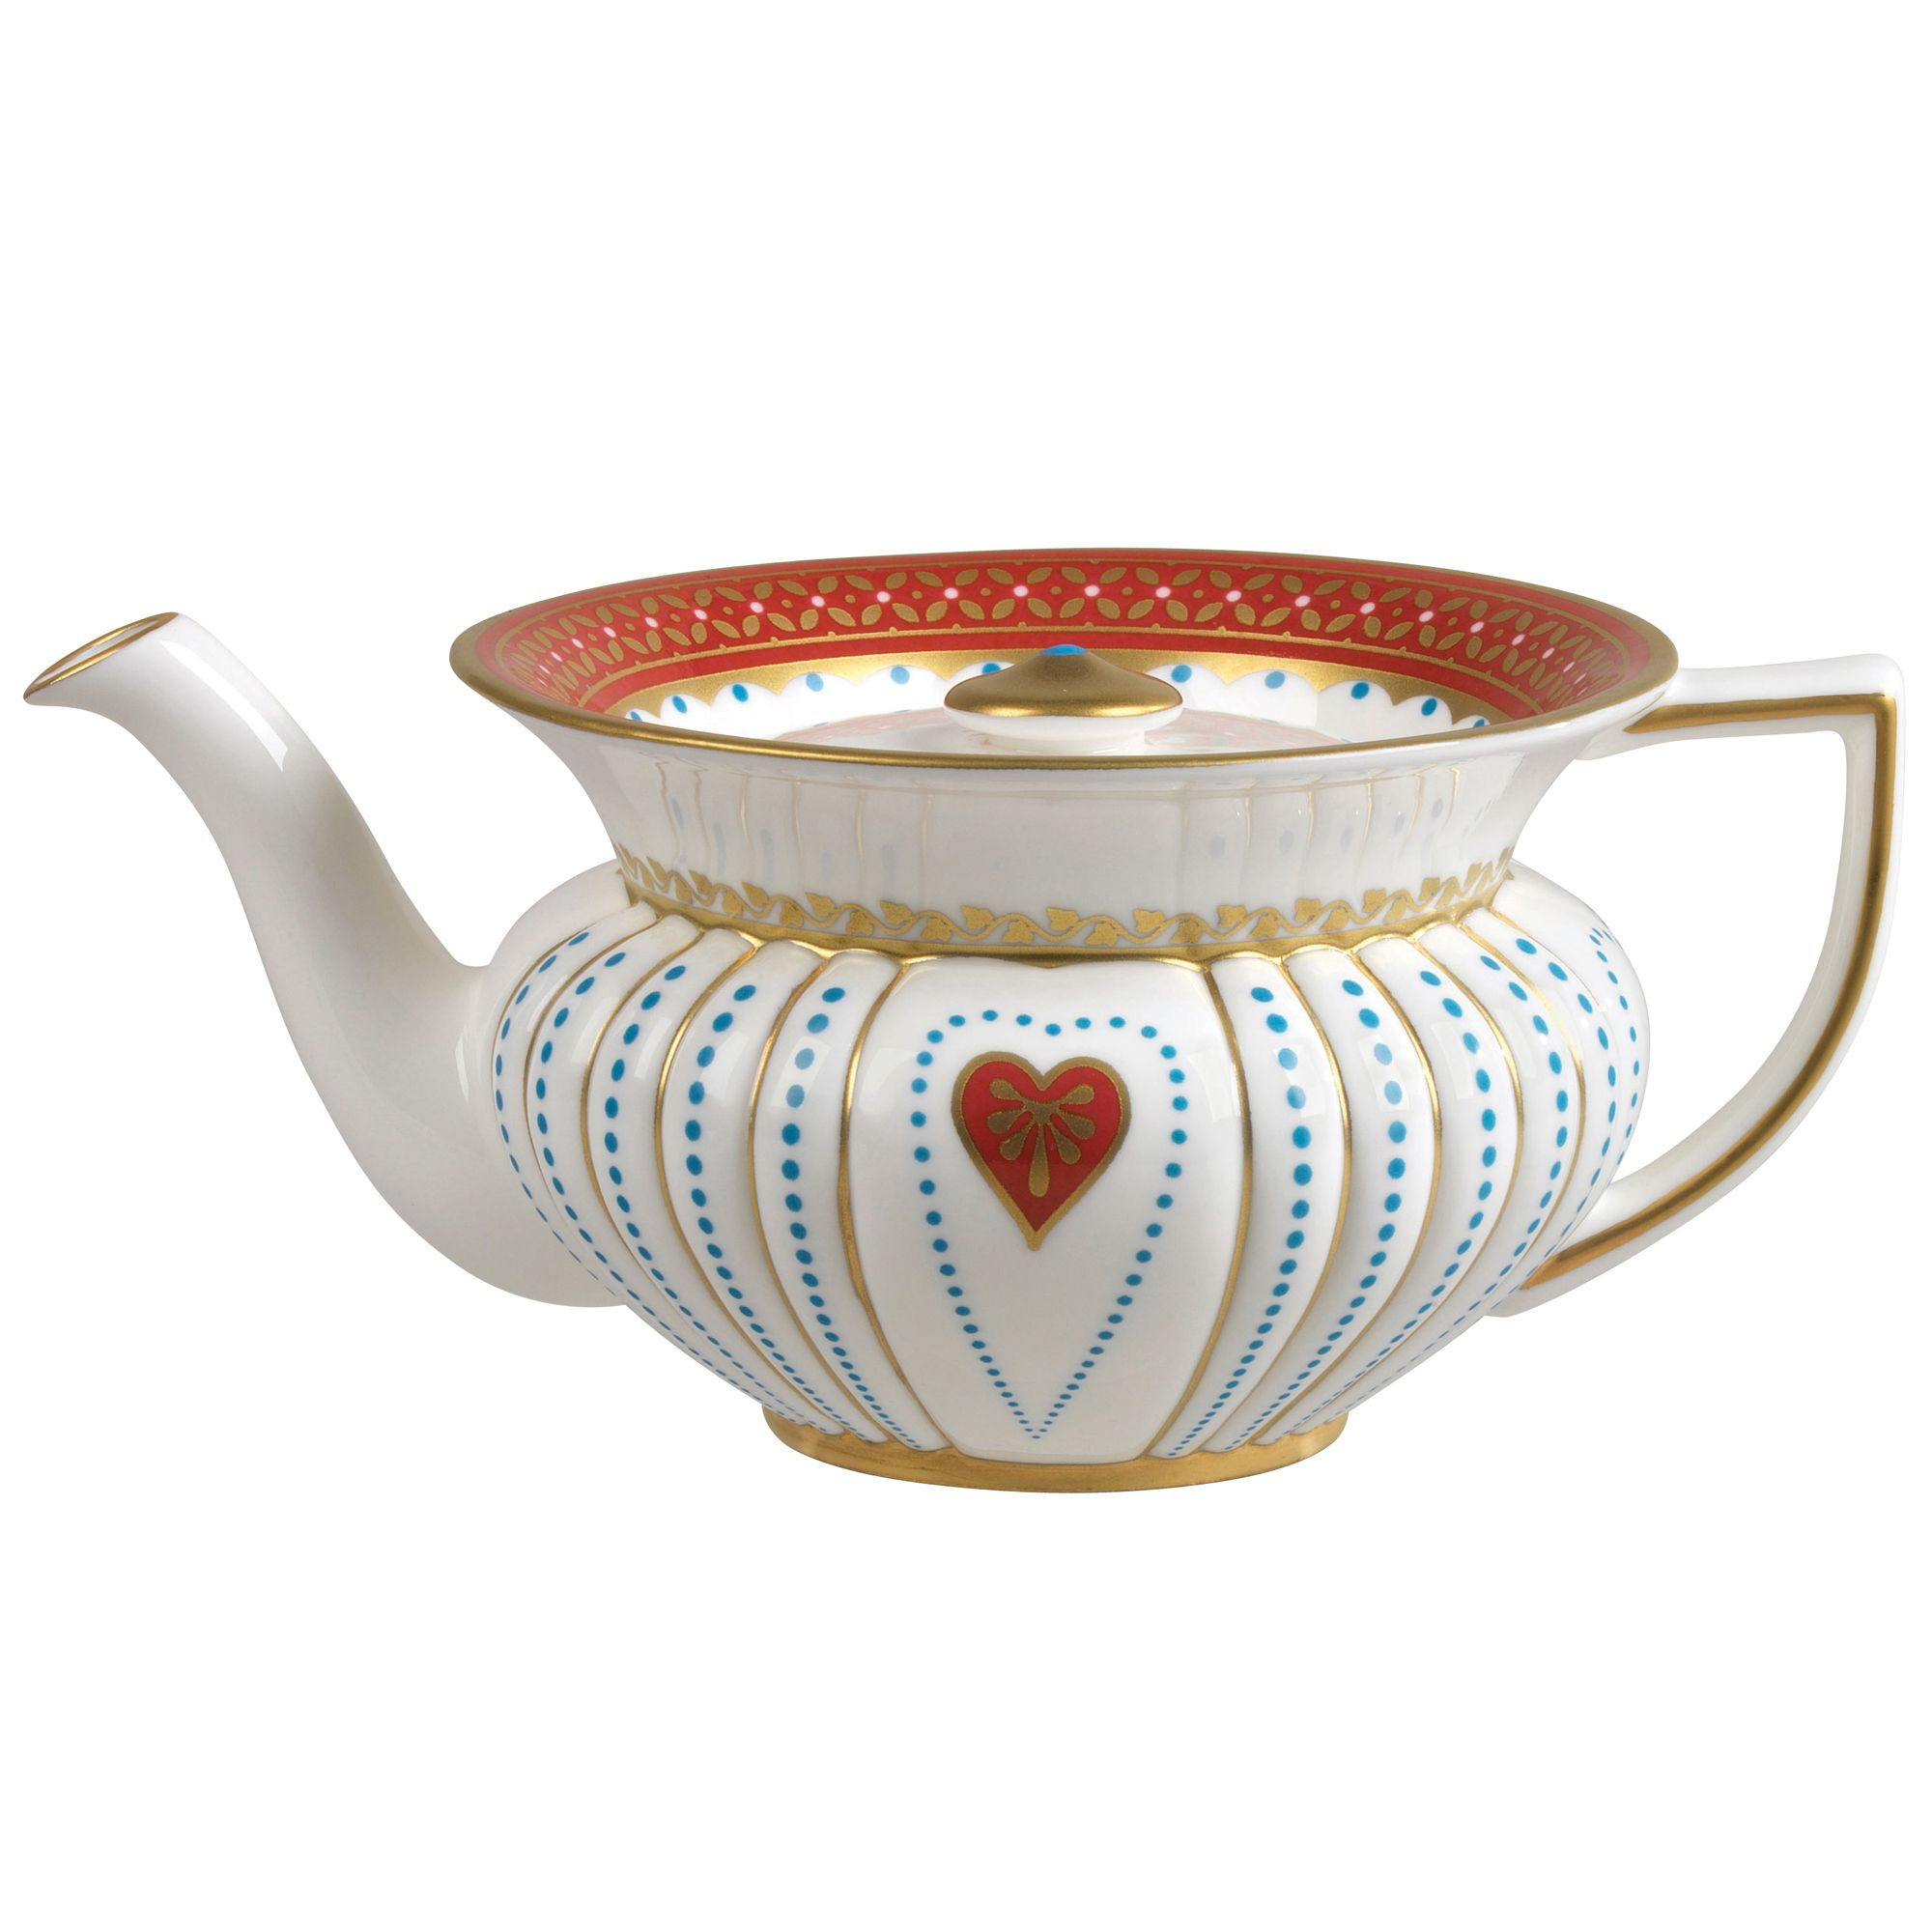 Queen of Hearts collection teapot